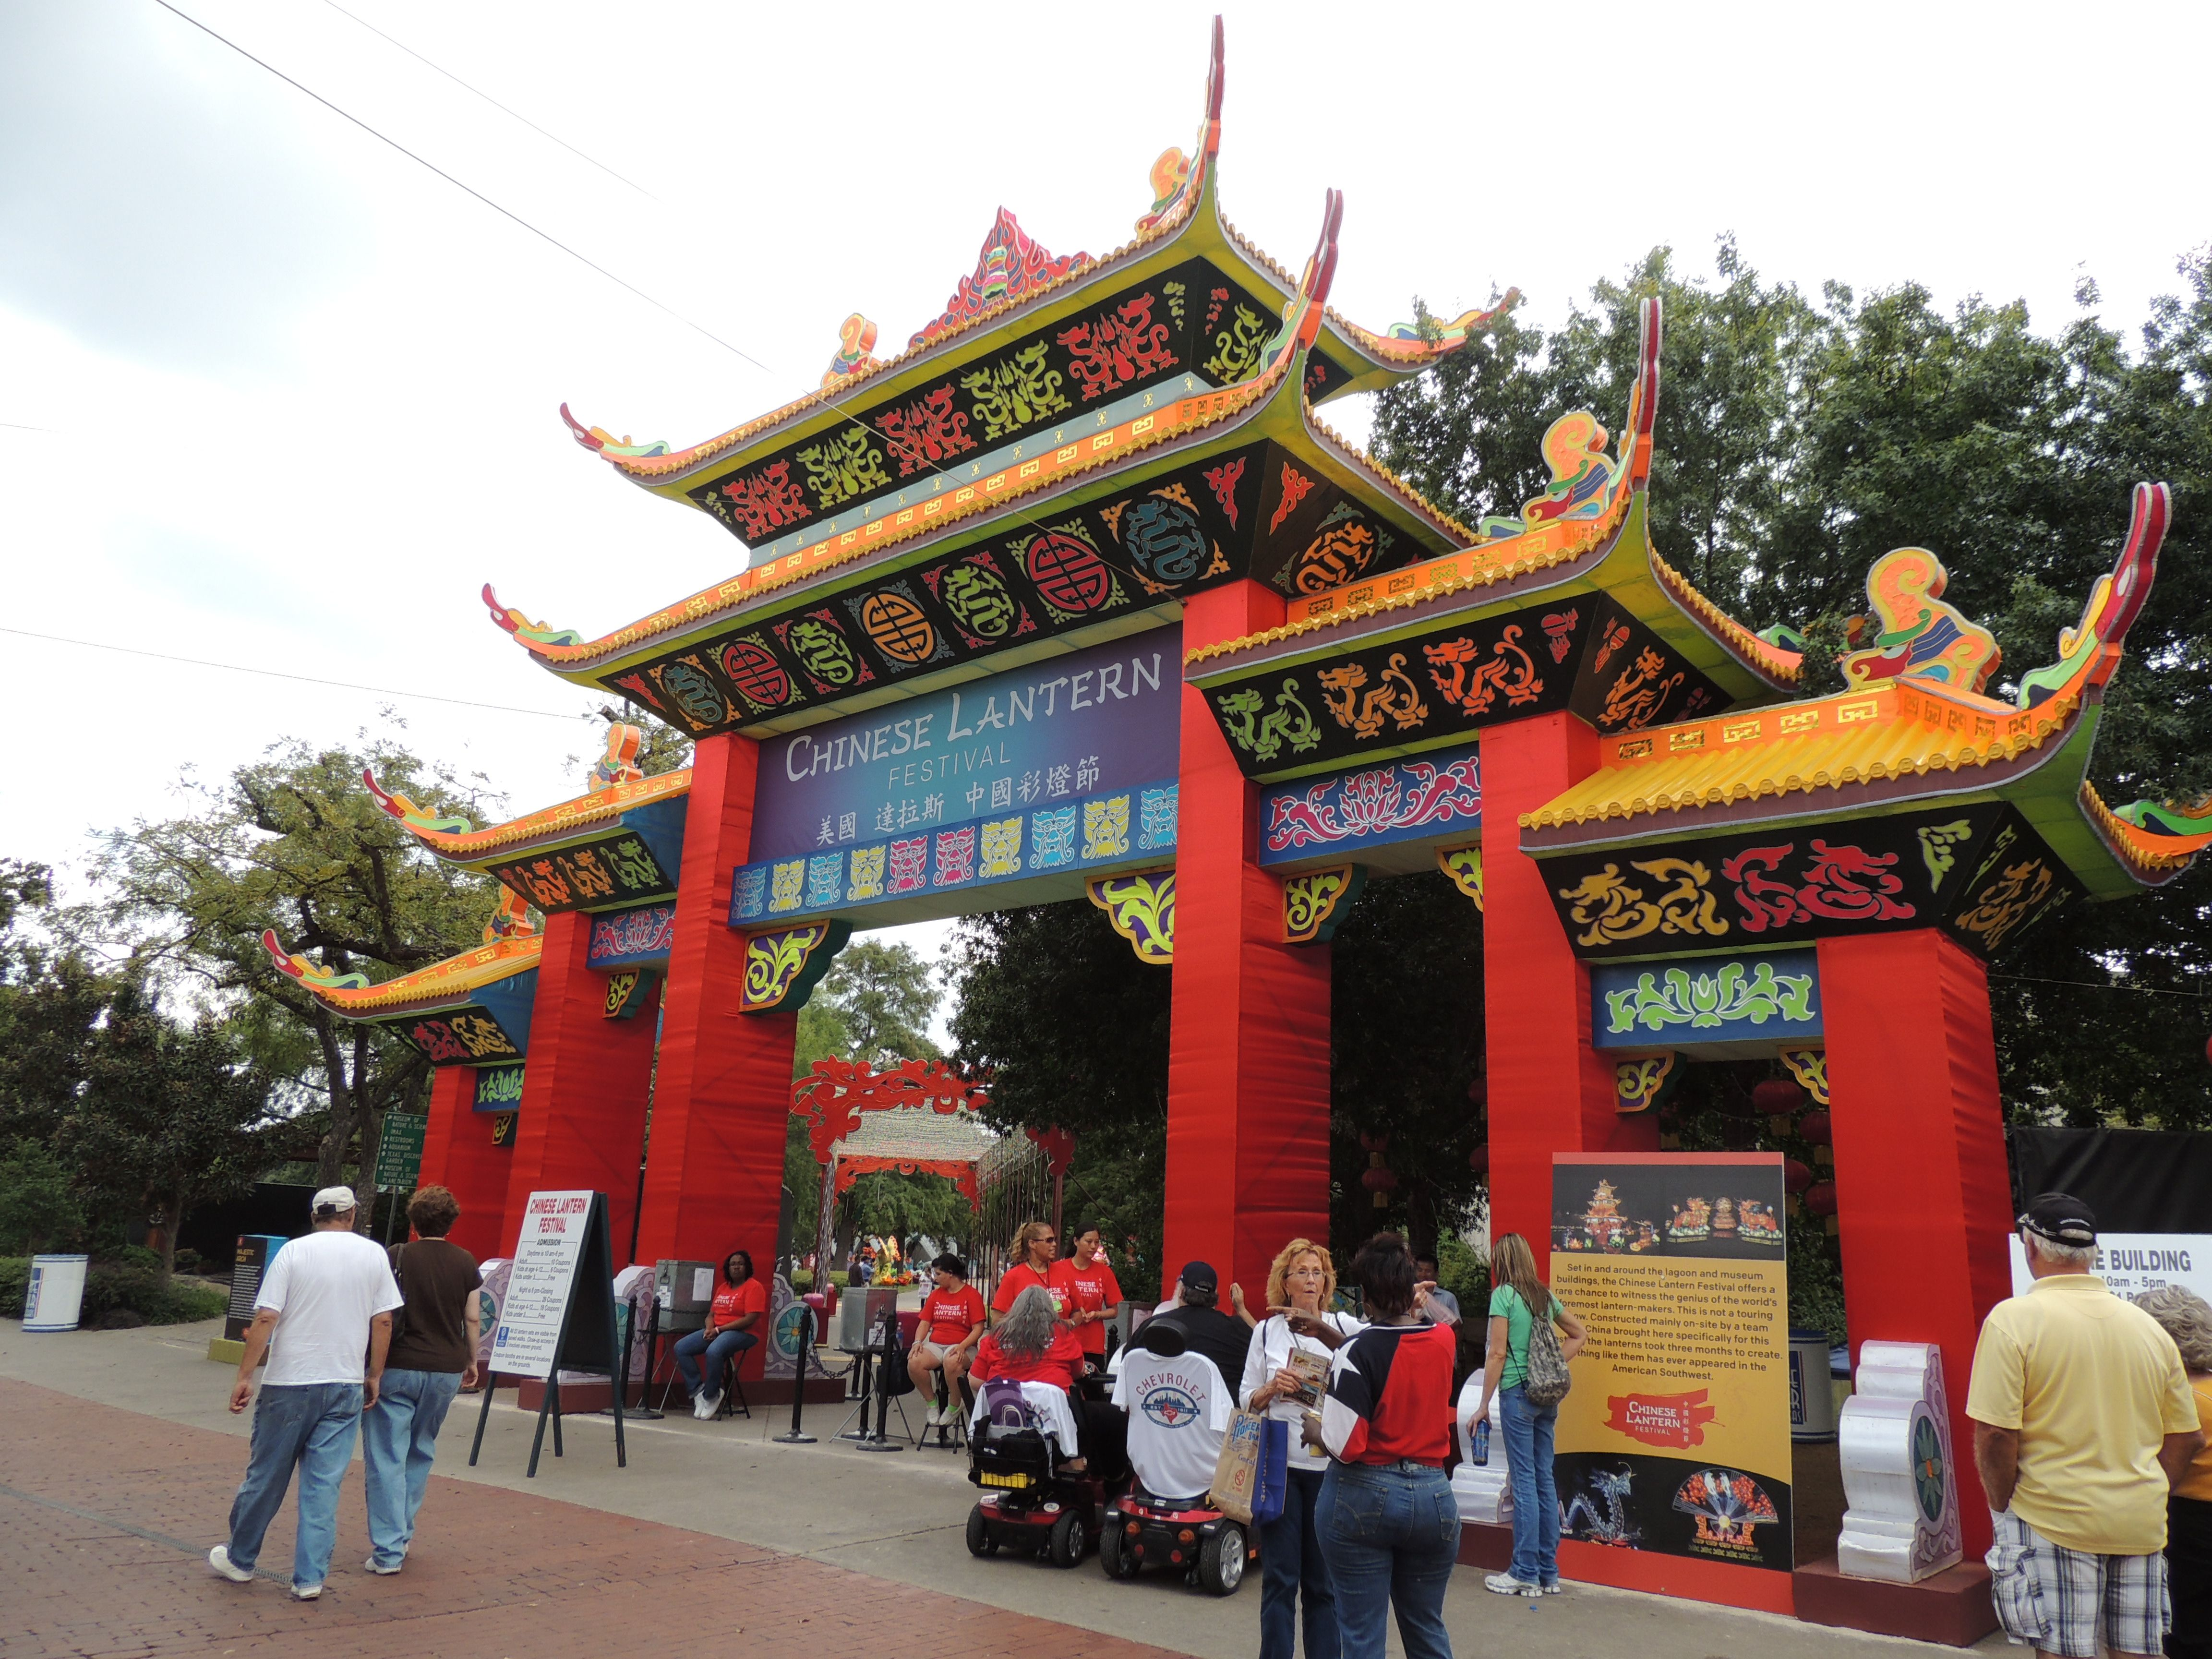 Entrance to Chinese Garden display